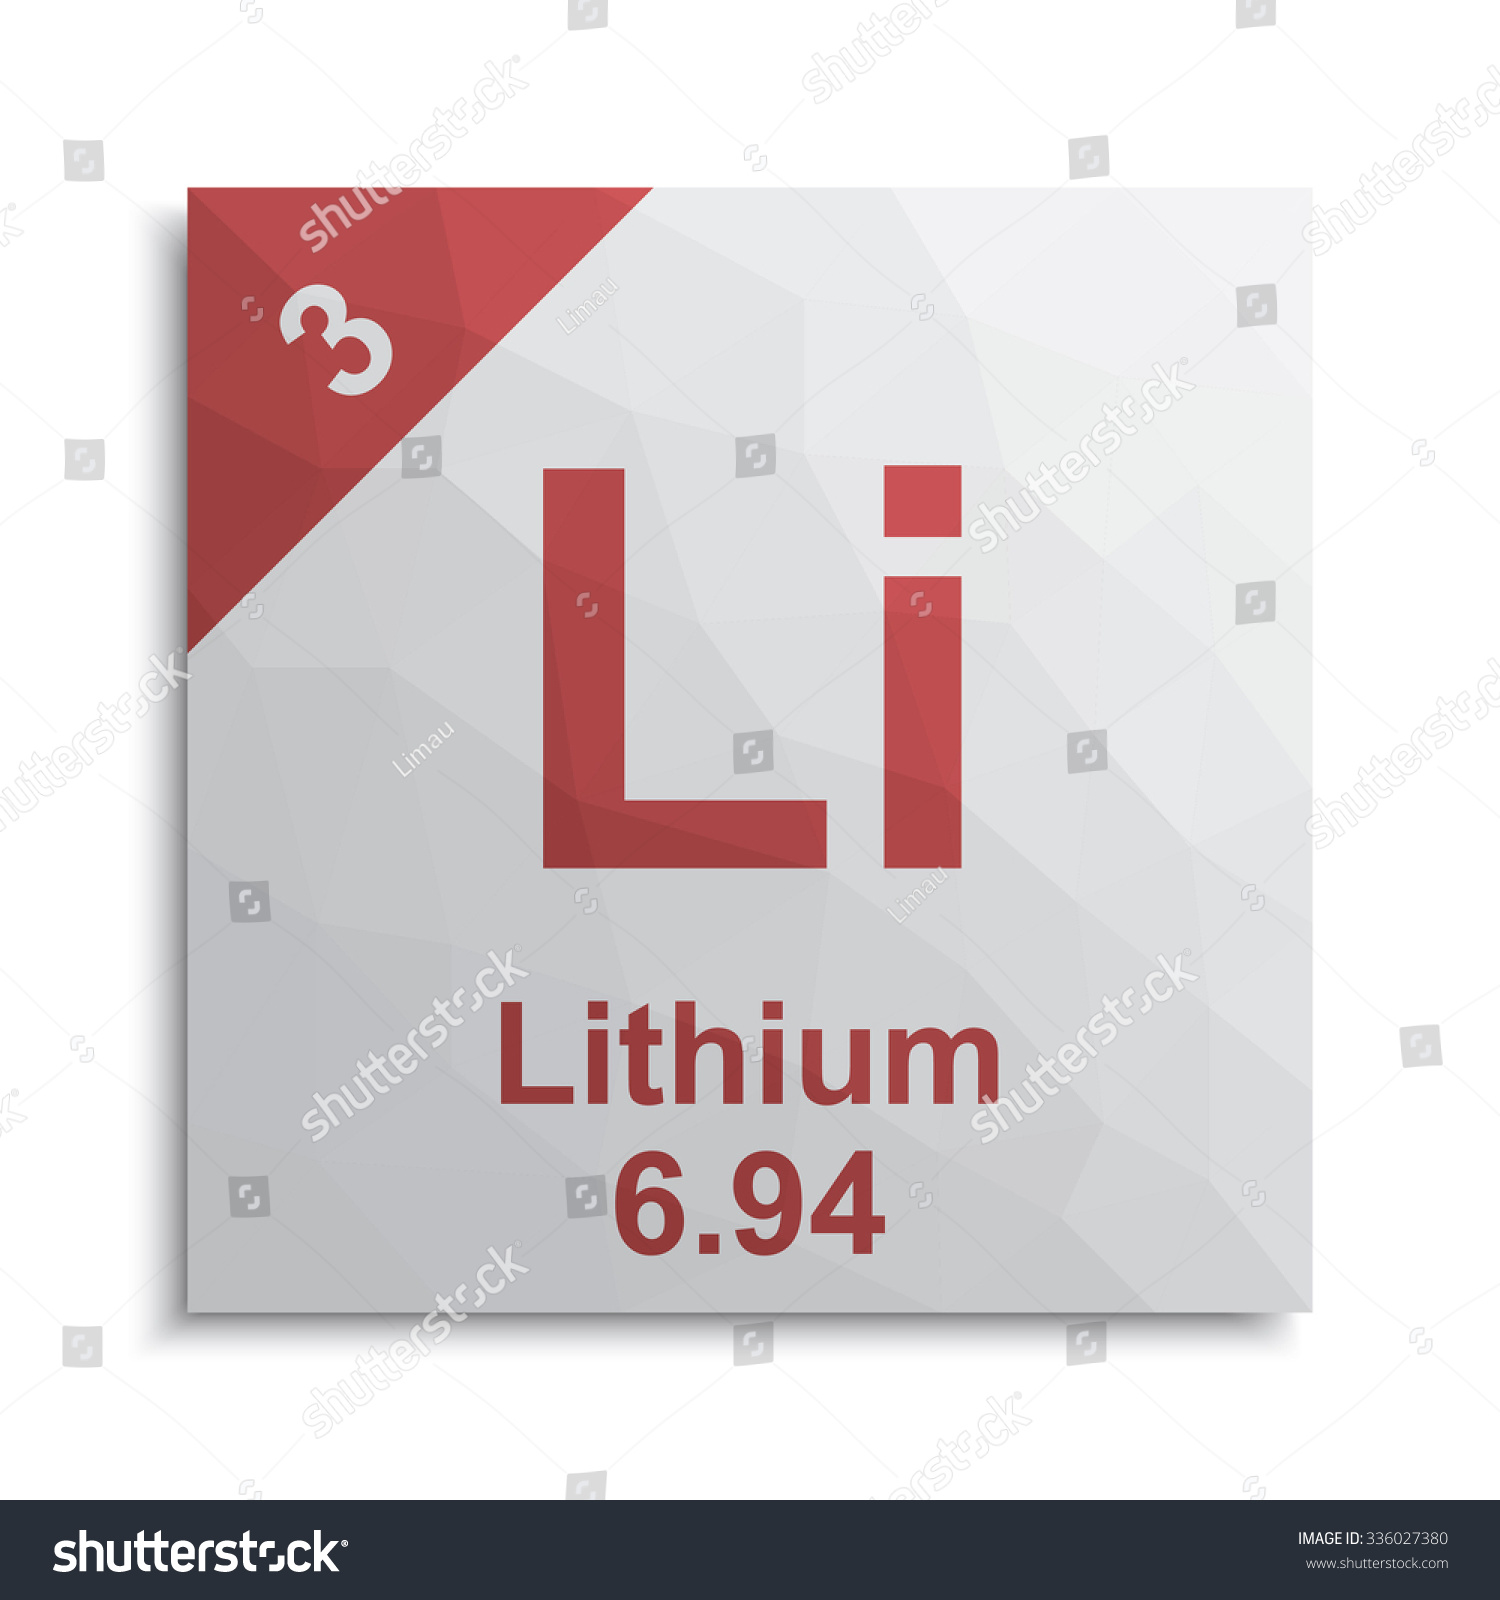 Lithium periodic table facts image collections periodic table images lithium periodic table facts images periodic table images lithium periodic table facts image collections periodic table gamestrikefo Choice Image